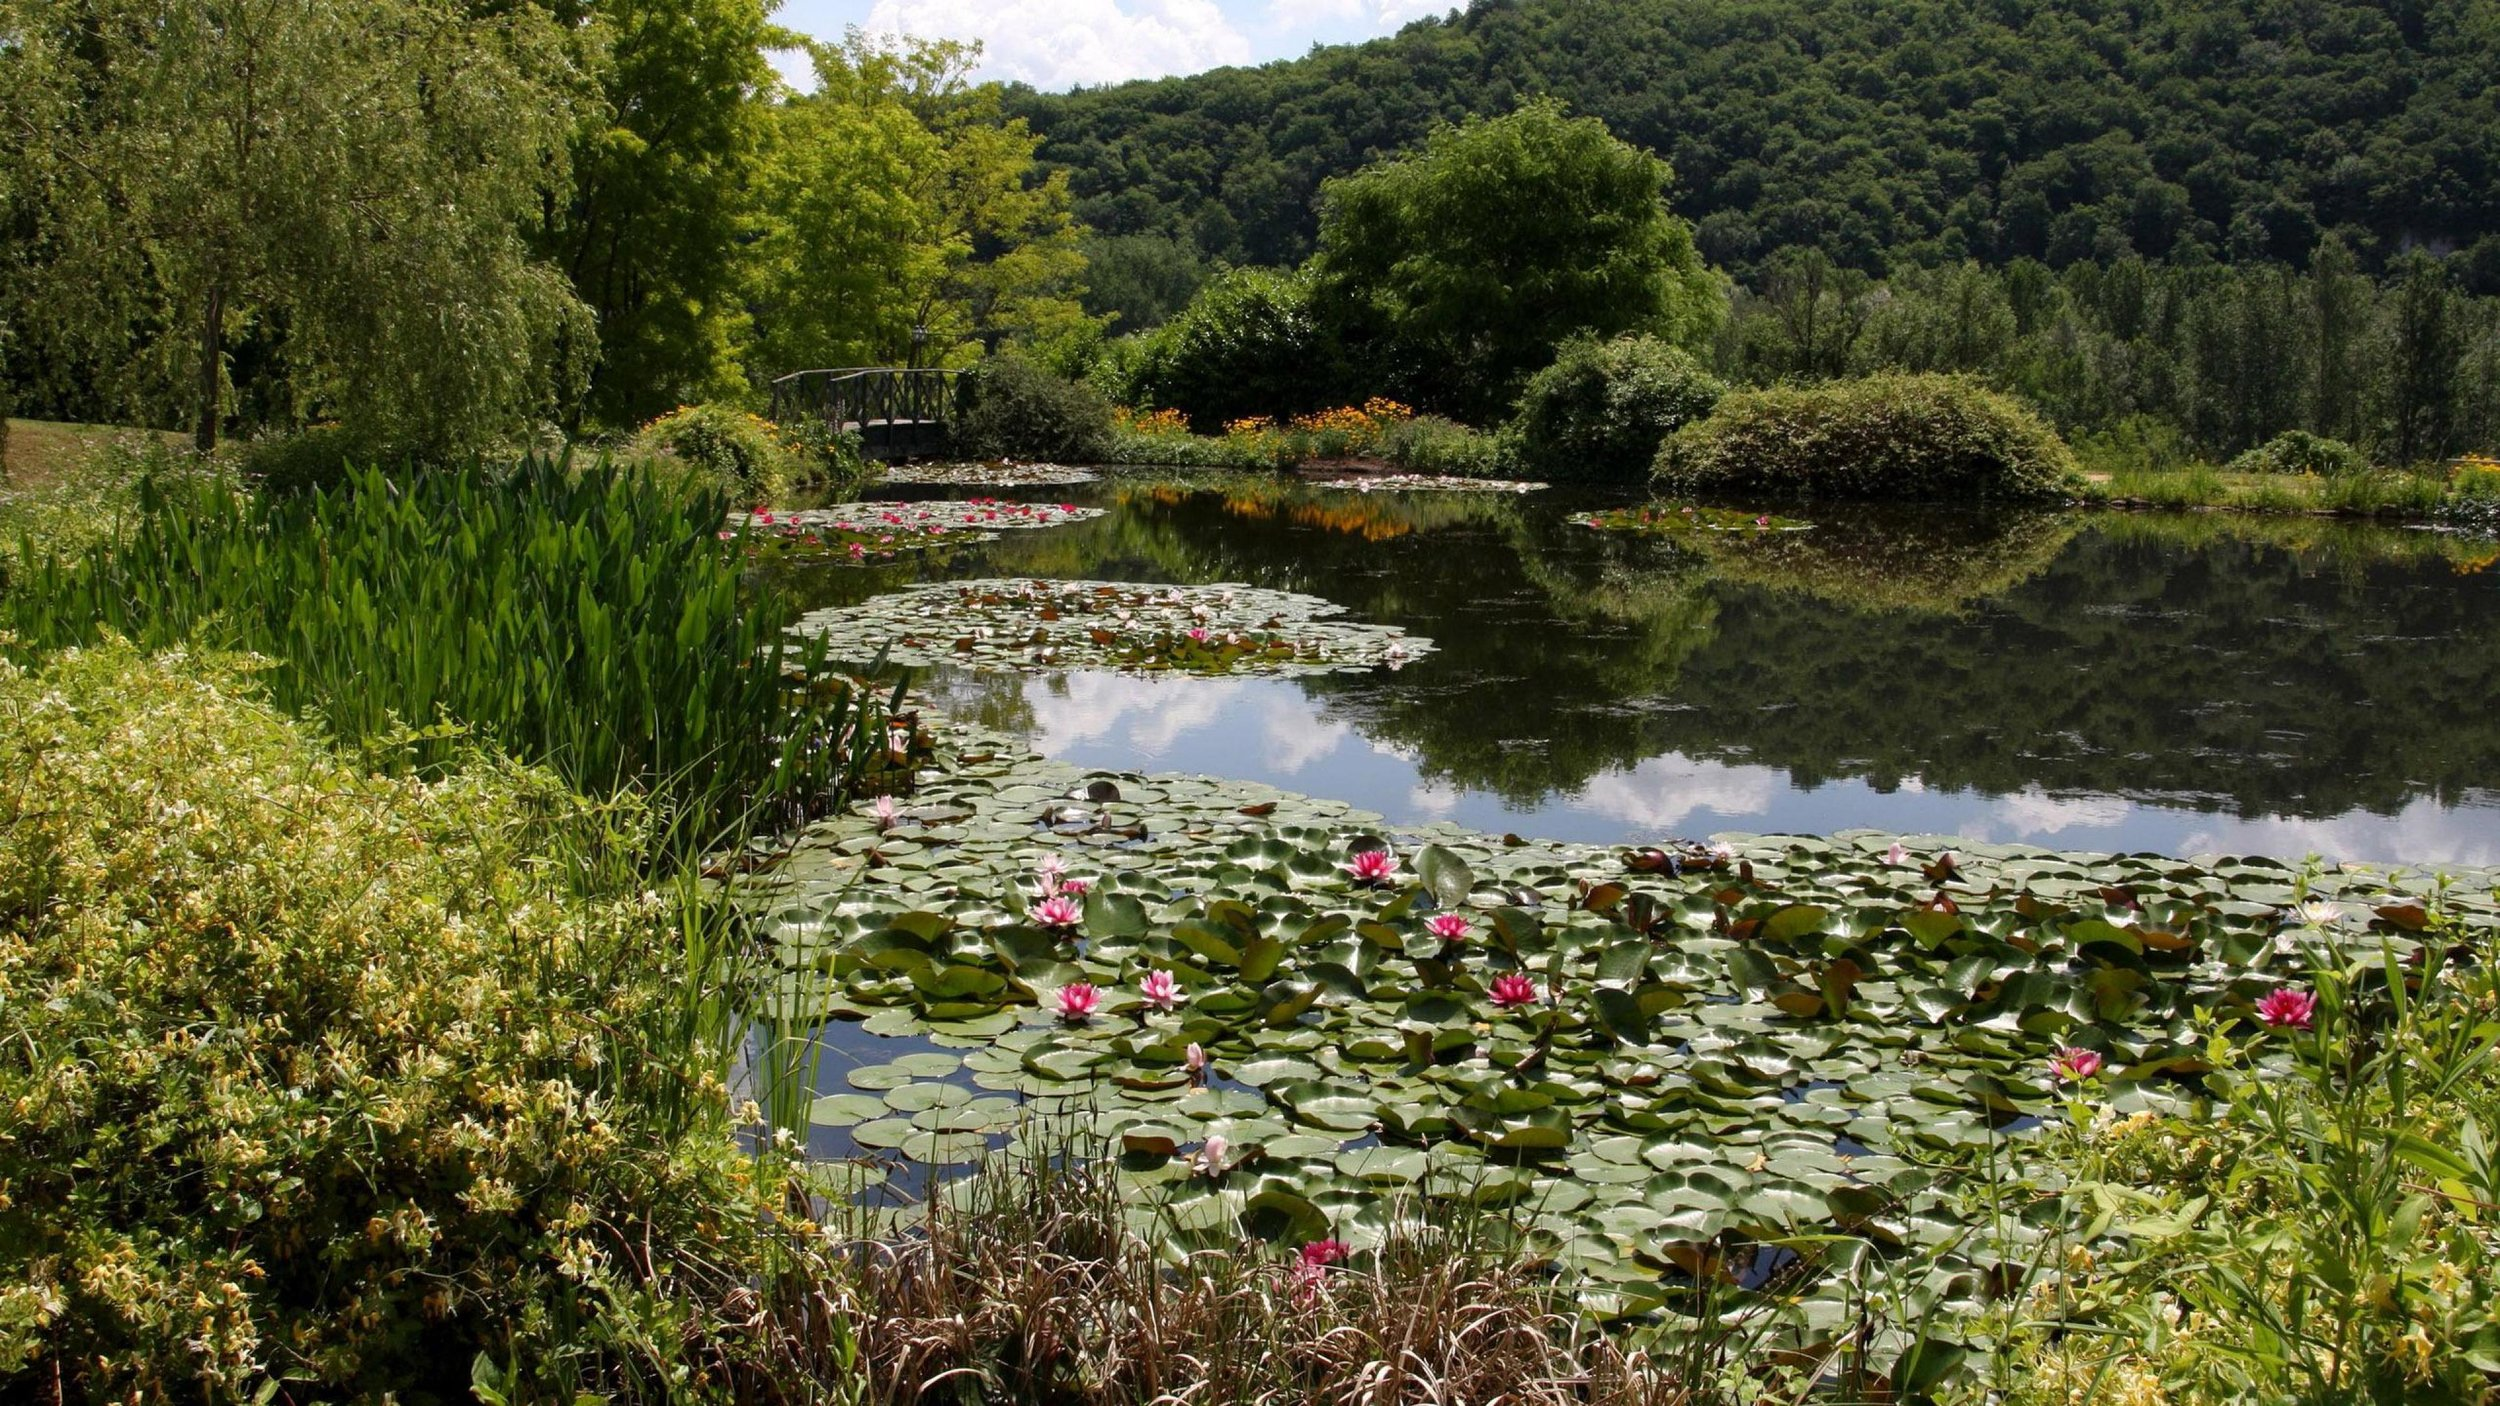 3840x2160-tree_nature_water_lilies_on_the_pond_forest_lily_water_pond-15330.jpg